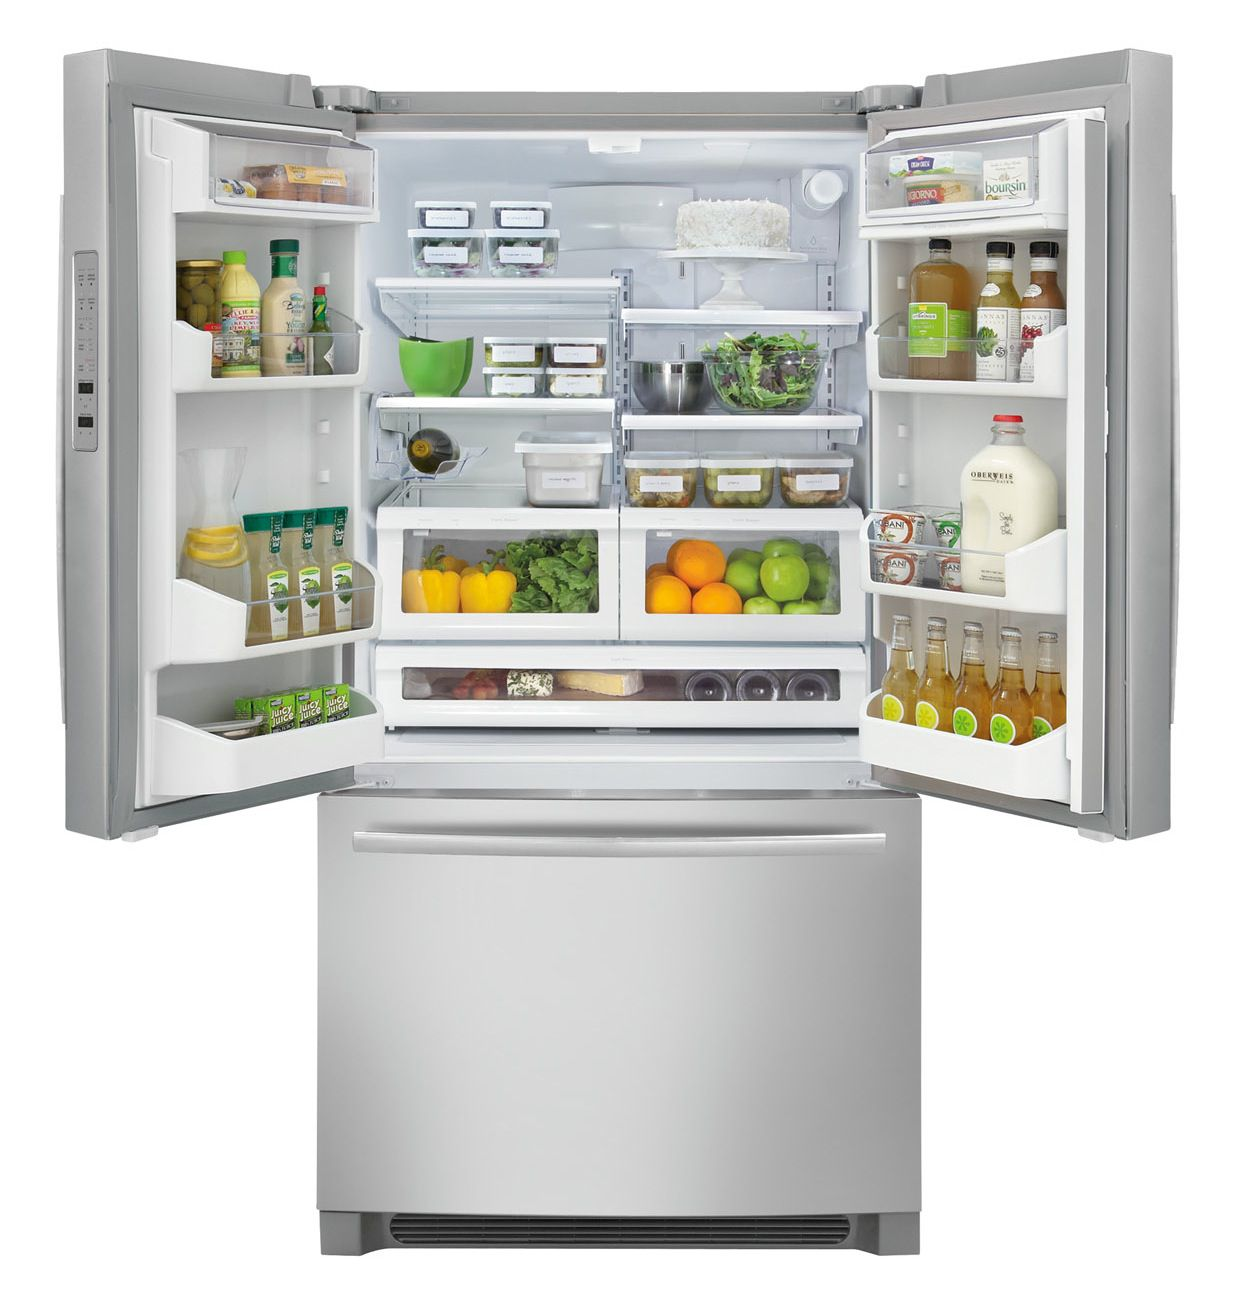 Frigidaire 22.6 cu. ft. Counter-Depth French-Door  Bottom-Freezer Refrigerator - Stainless Steel